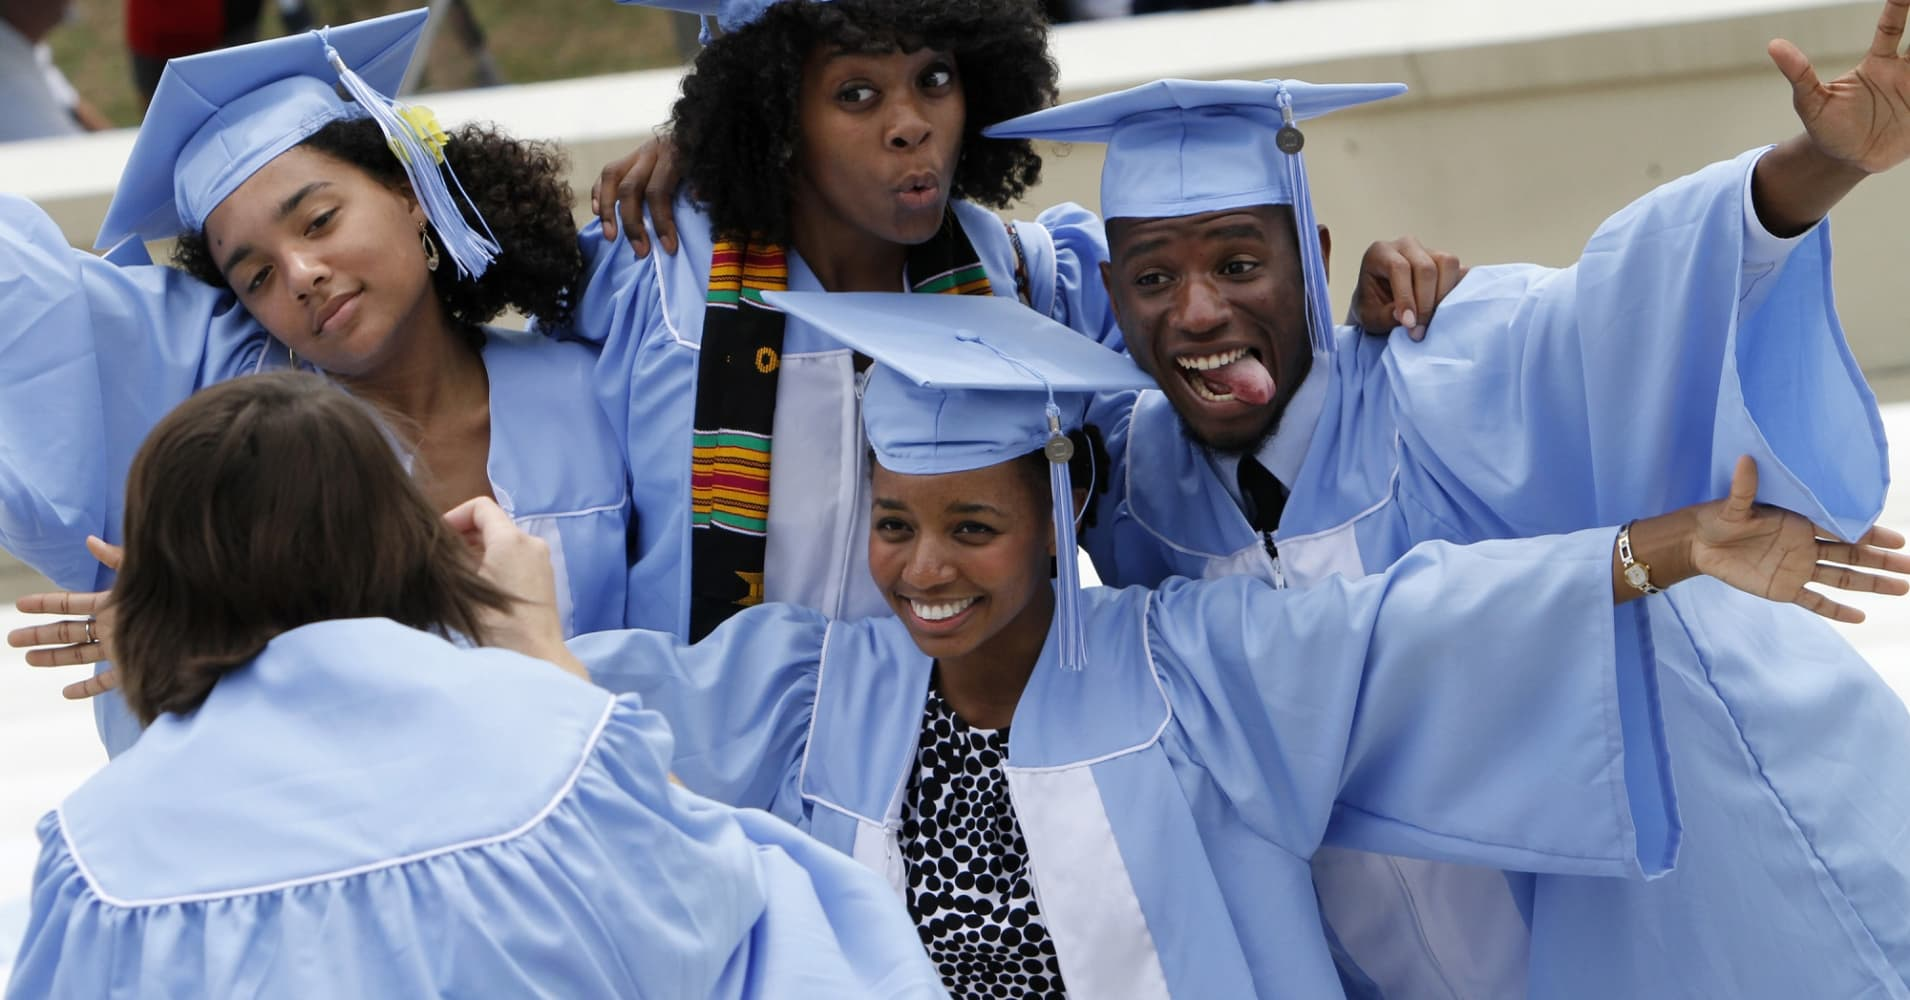 the 10 most and least educated cities in the united states